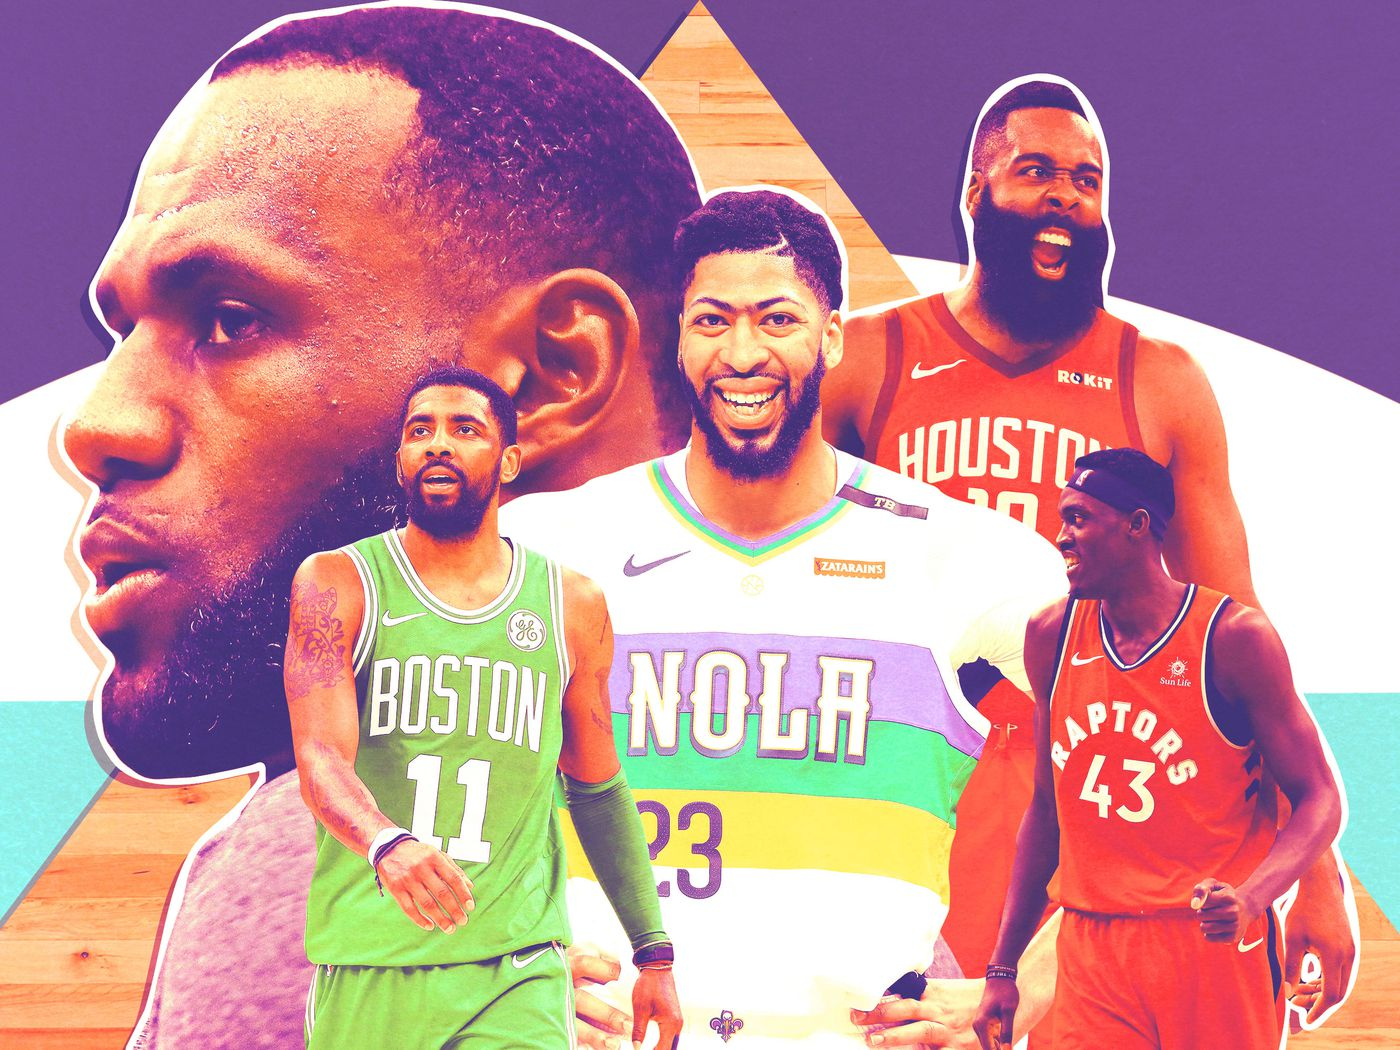 ec9df9f4a4a The Five Most Interesting Players of the 2018-19 NBA Season - The Ringer